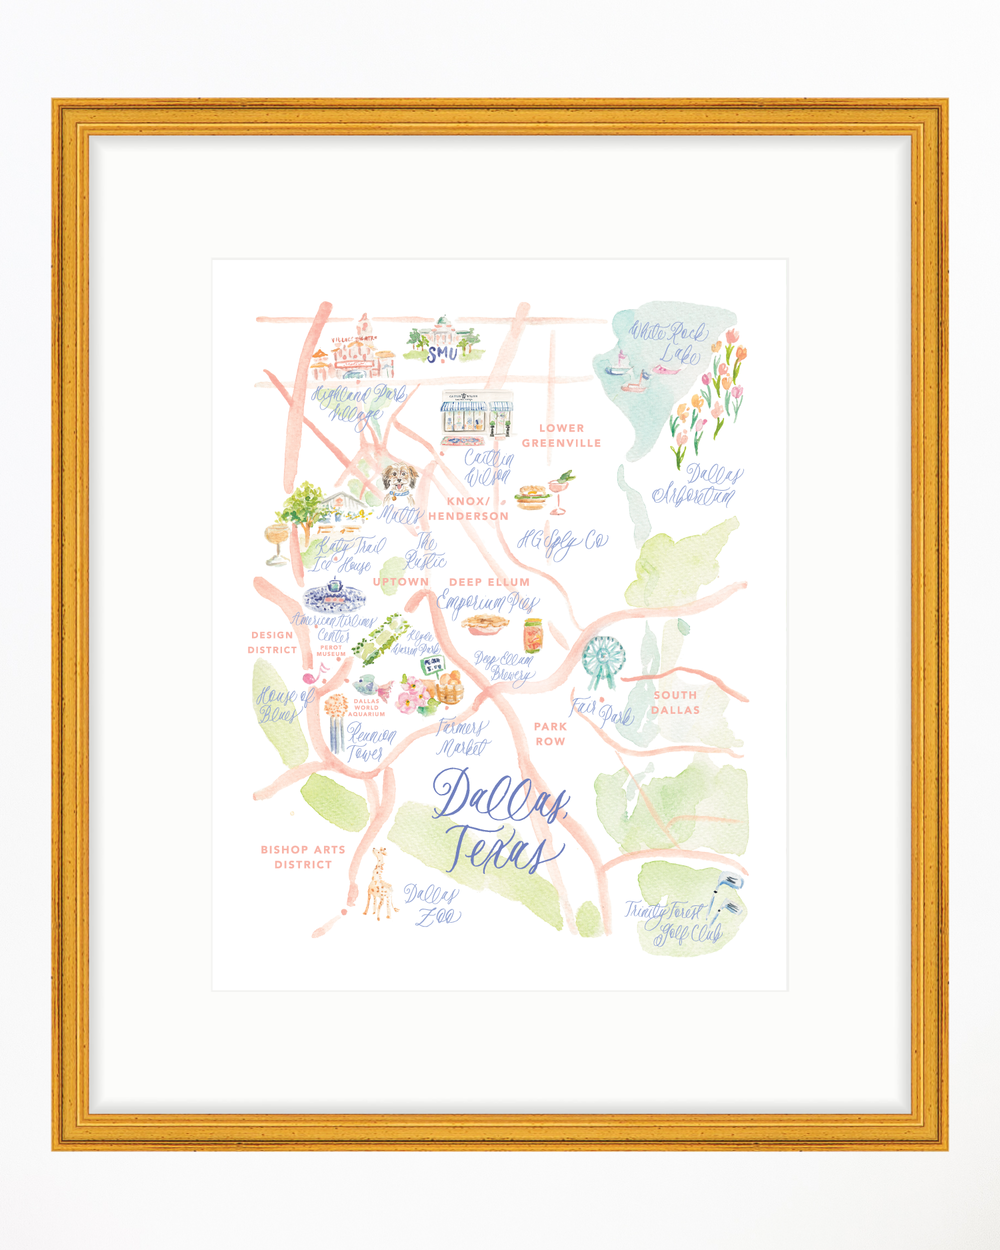 Dallas-Watercolor-Map-Art-Print-by-Simply-Jessica-Marie-_-SC-Stockshop-Photo-_-11x14-_-Close-Up.png